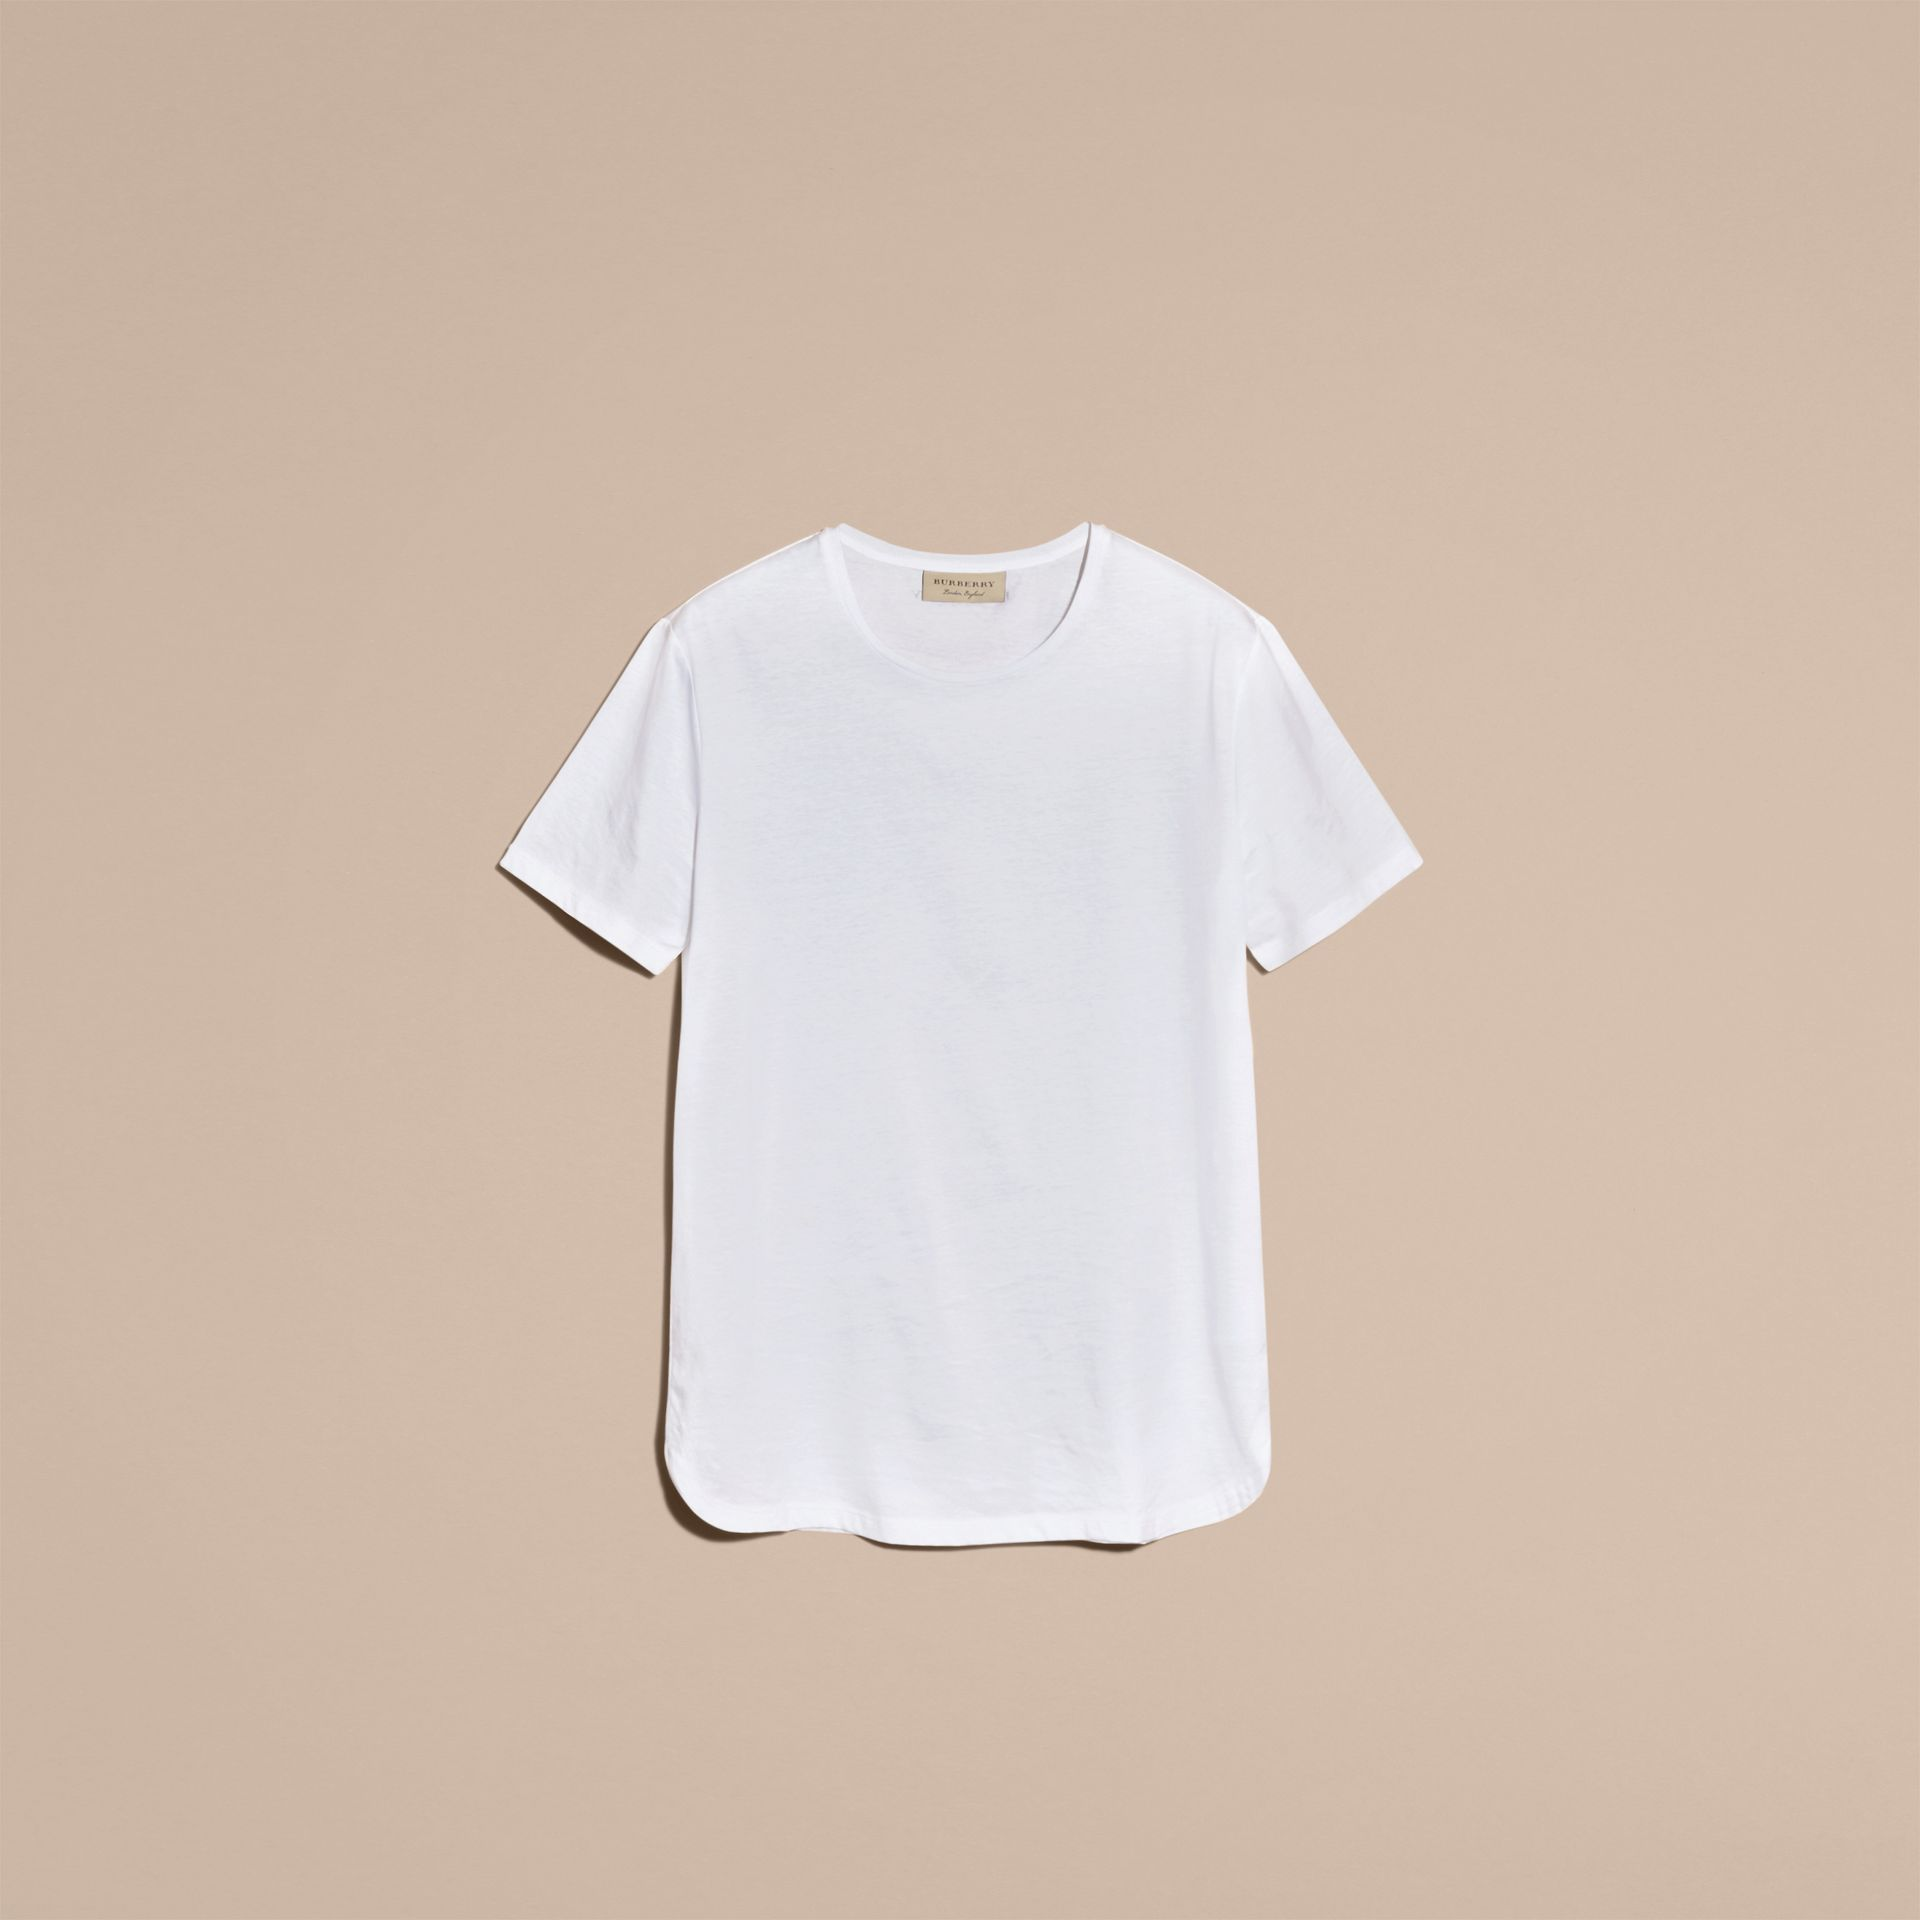 Crew Neck Cotton T-shirt in White - Men | Burberry - gallery image 4